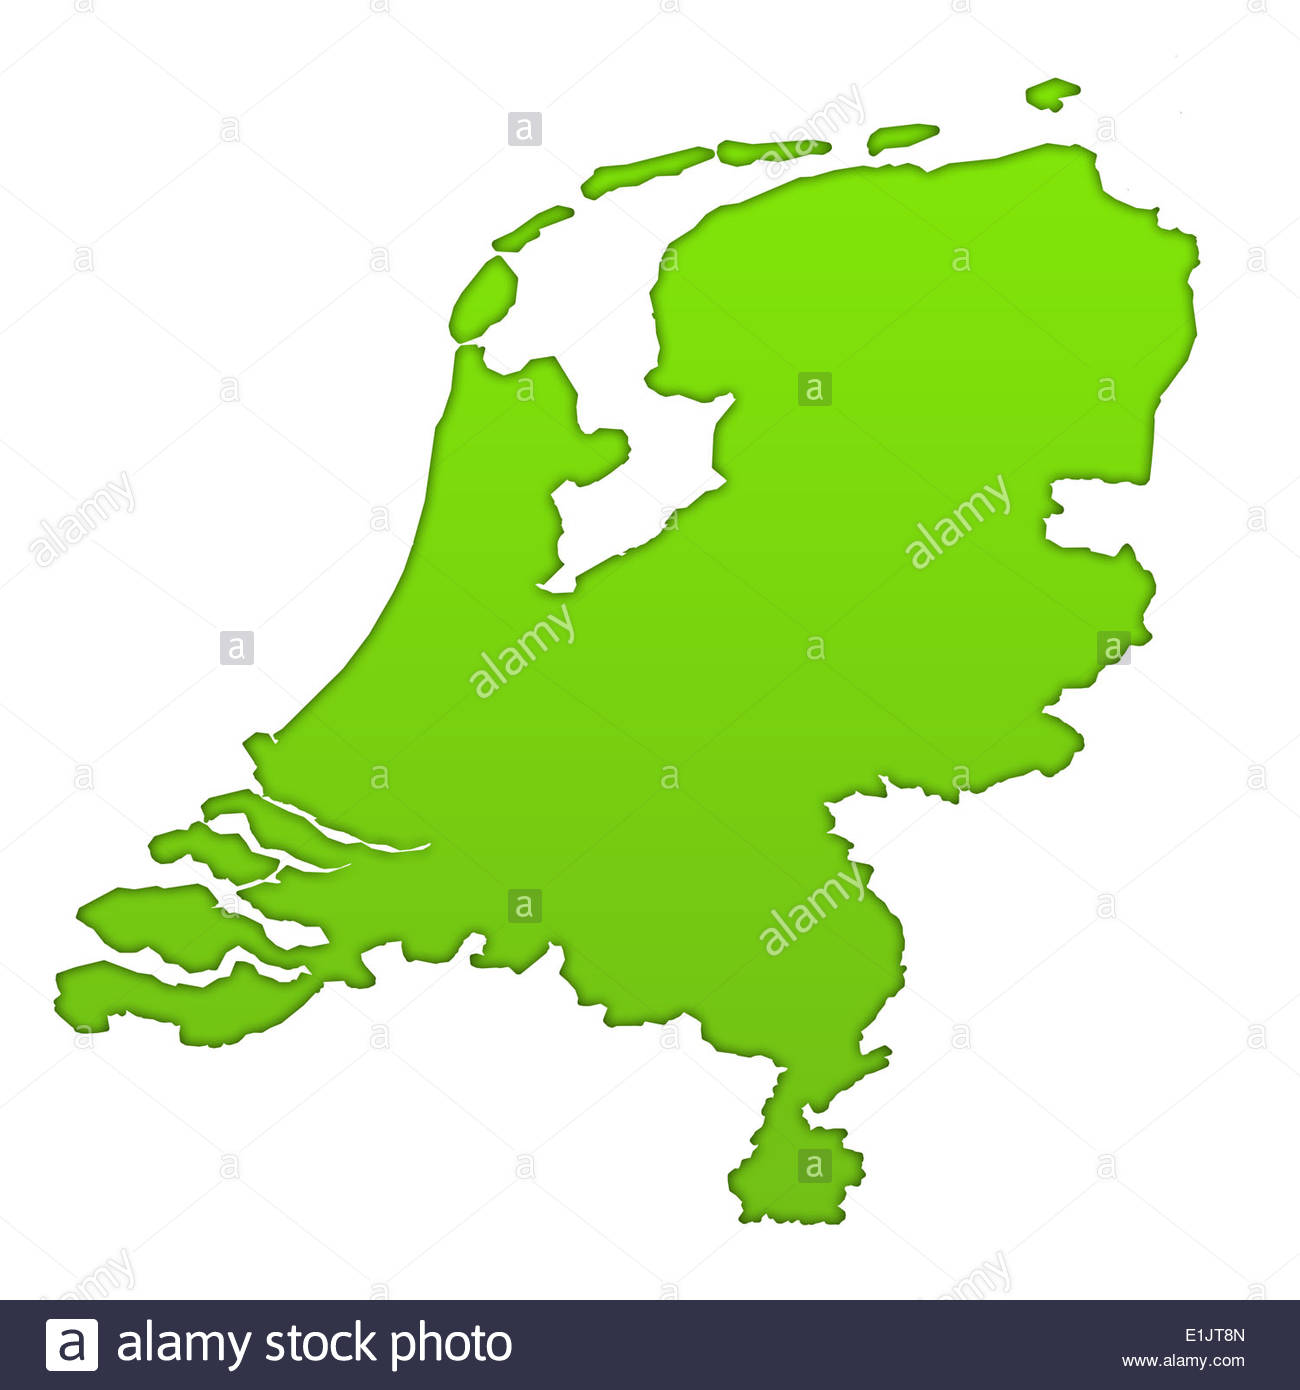 Holland Country Map Stockfotos & Holland Country Map Bilder ...